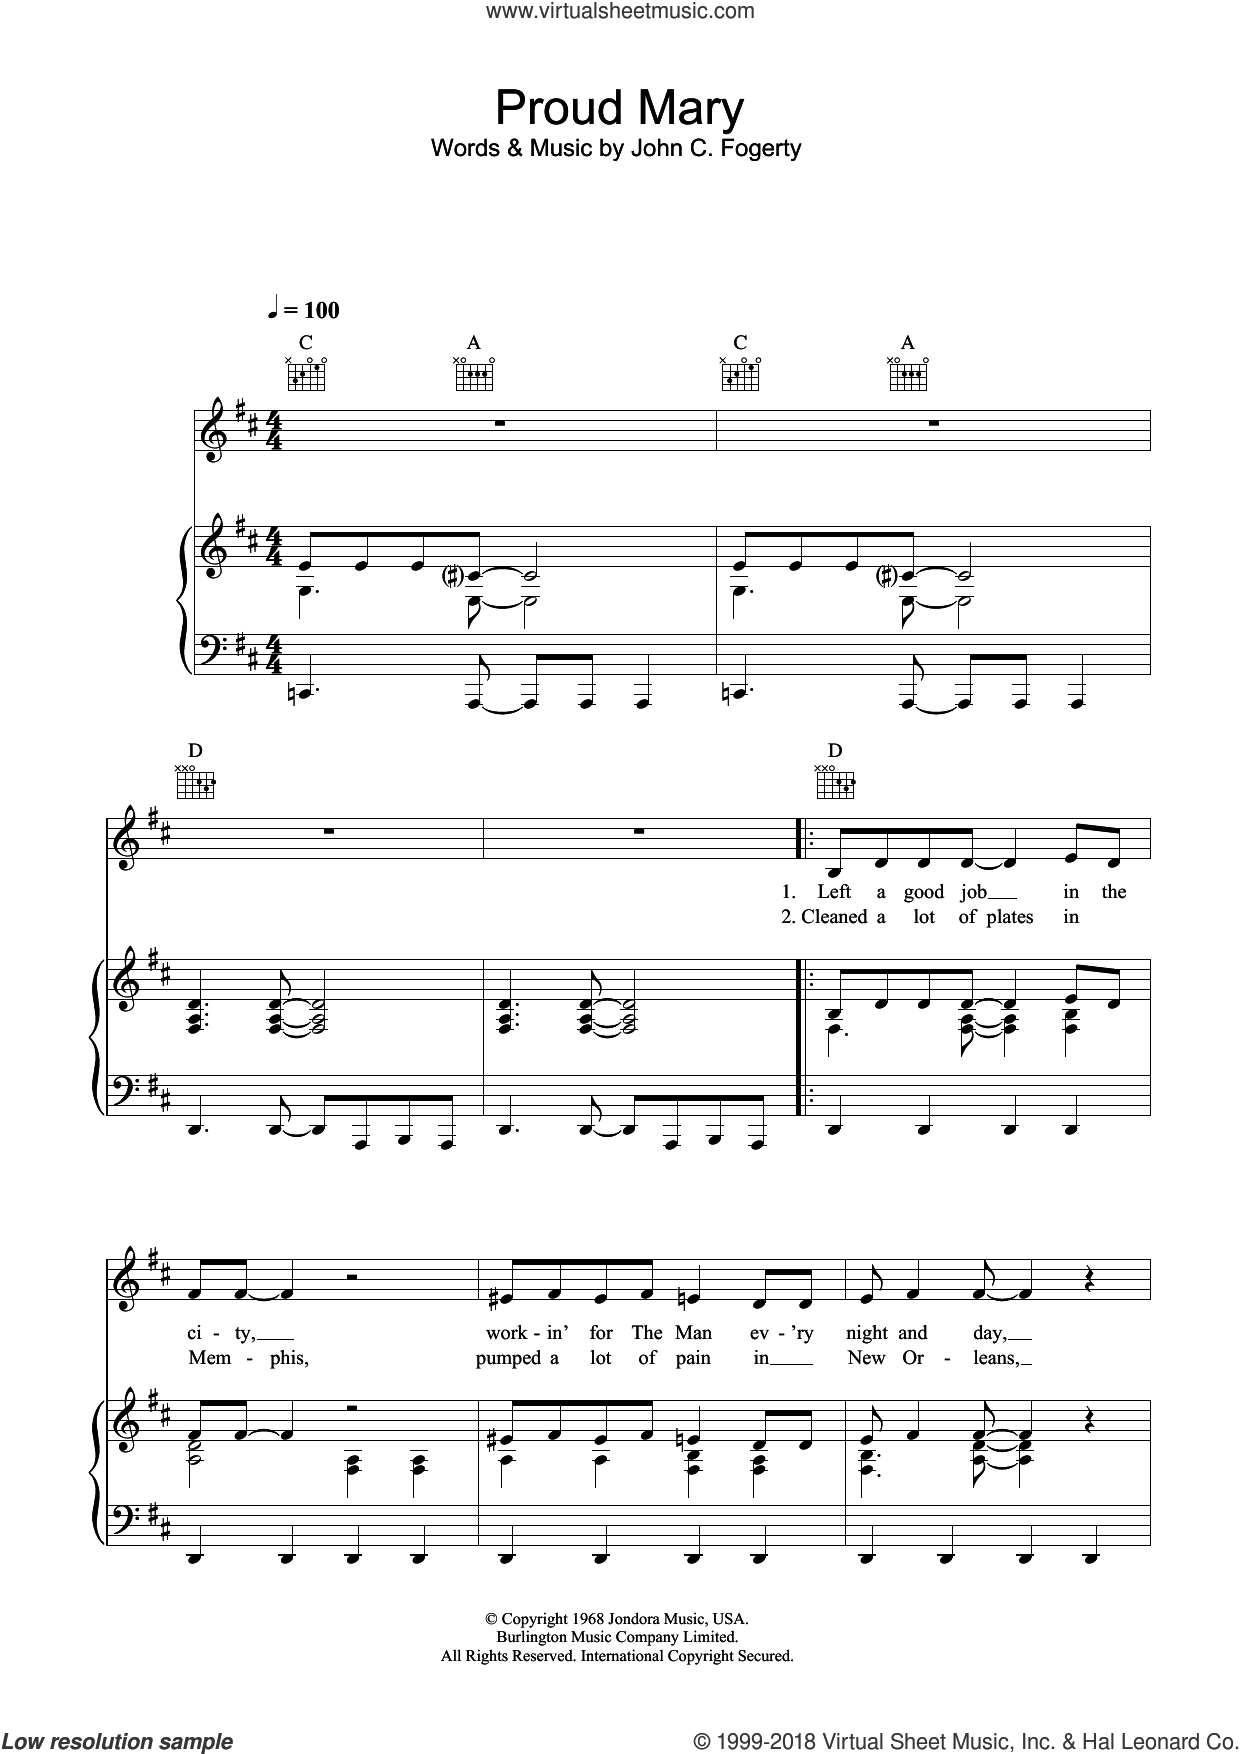 Proud Mary sheet music for voice, piano or guitar by Creedence Clearwater Revival, Ike & Tina Turner and John Fogerty, intermediate skill level